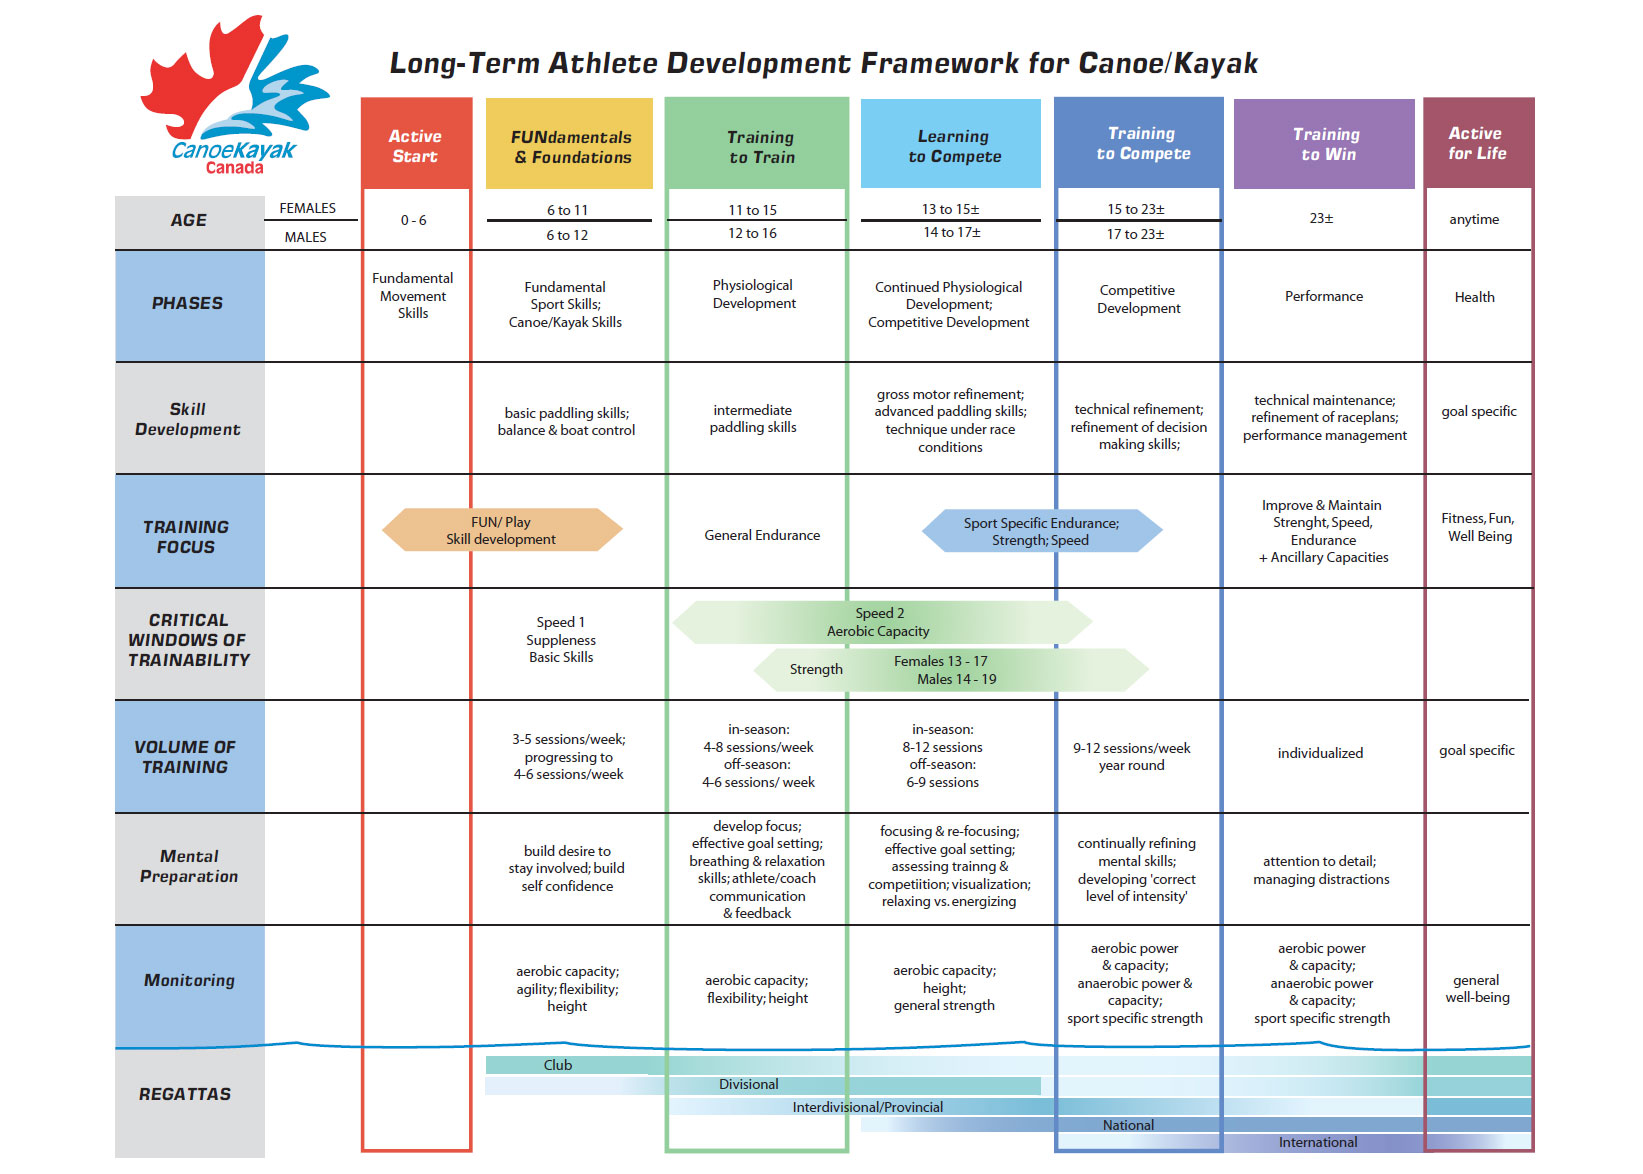 A Table summarizing the framework of the Long Term Athlete Development Plan for Canoe-Kayak Athletes in Canada